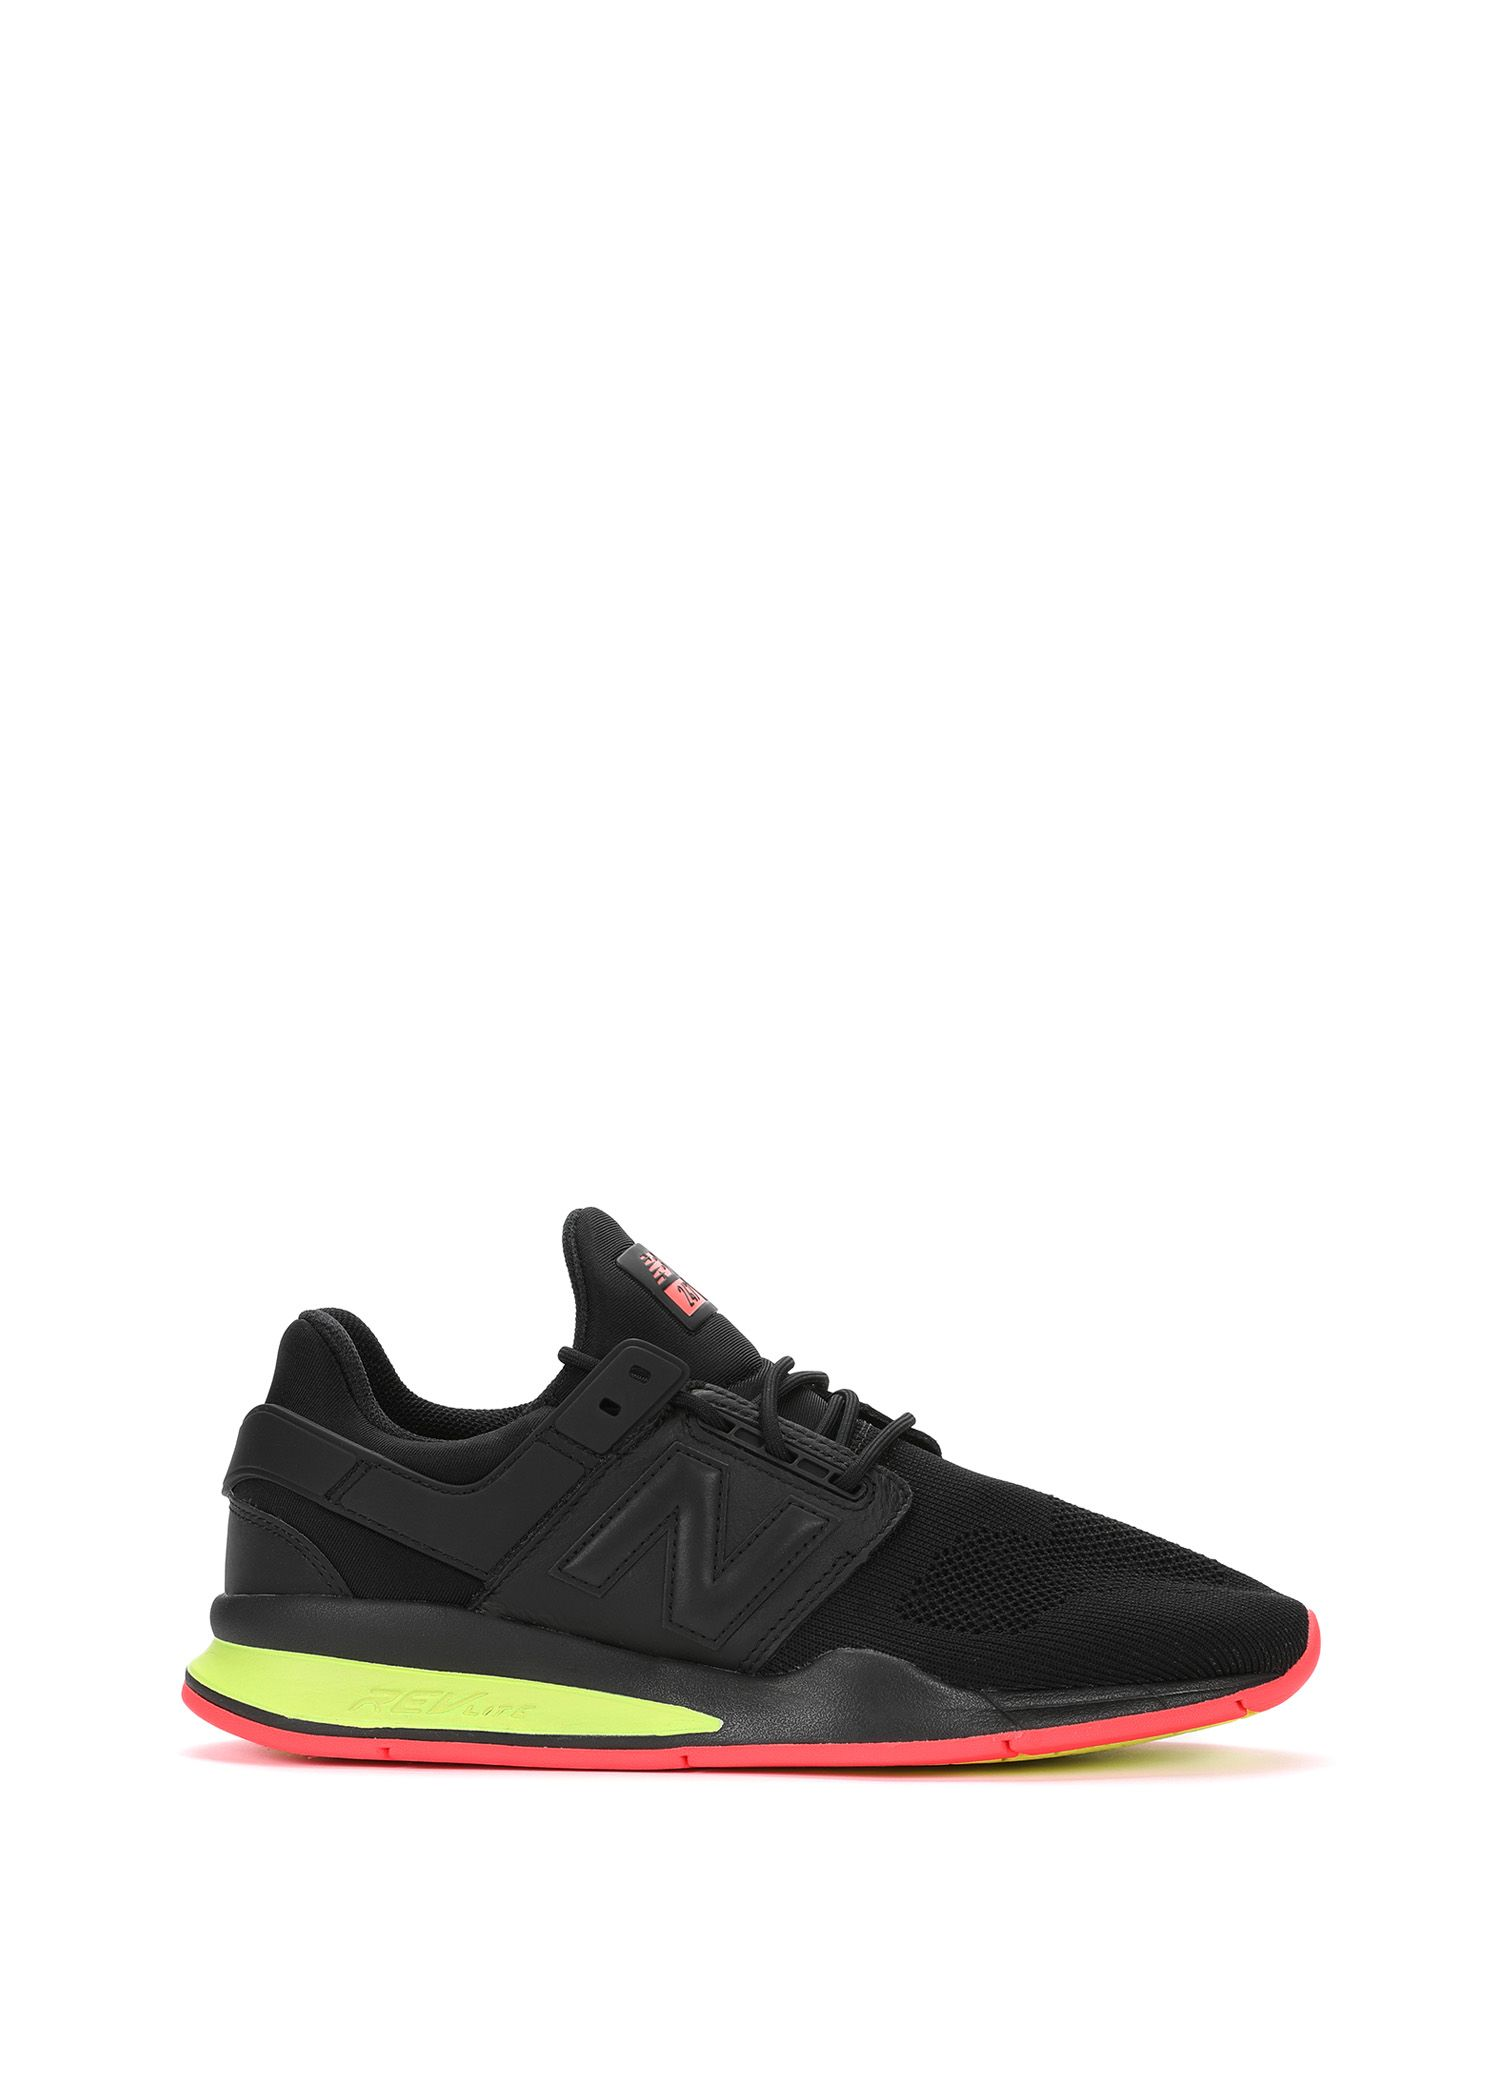 New Balance Ms247tt Newbalance Shoes Sneakers Men Fashion Addidas Shoes Mens Shoes Too Big